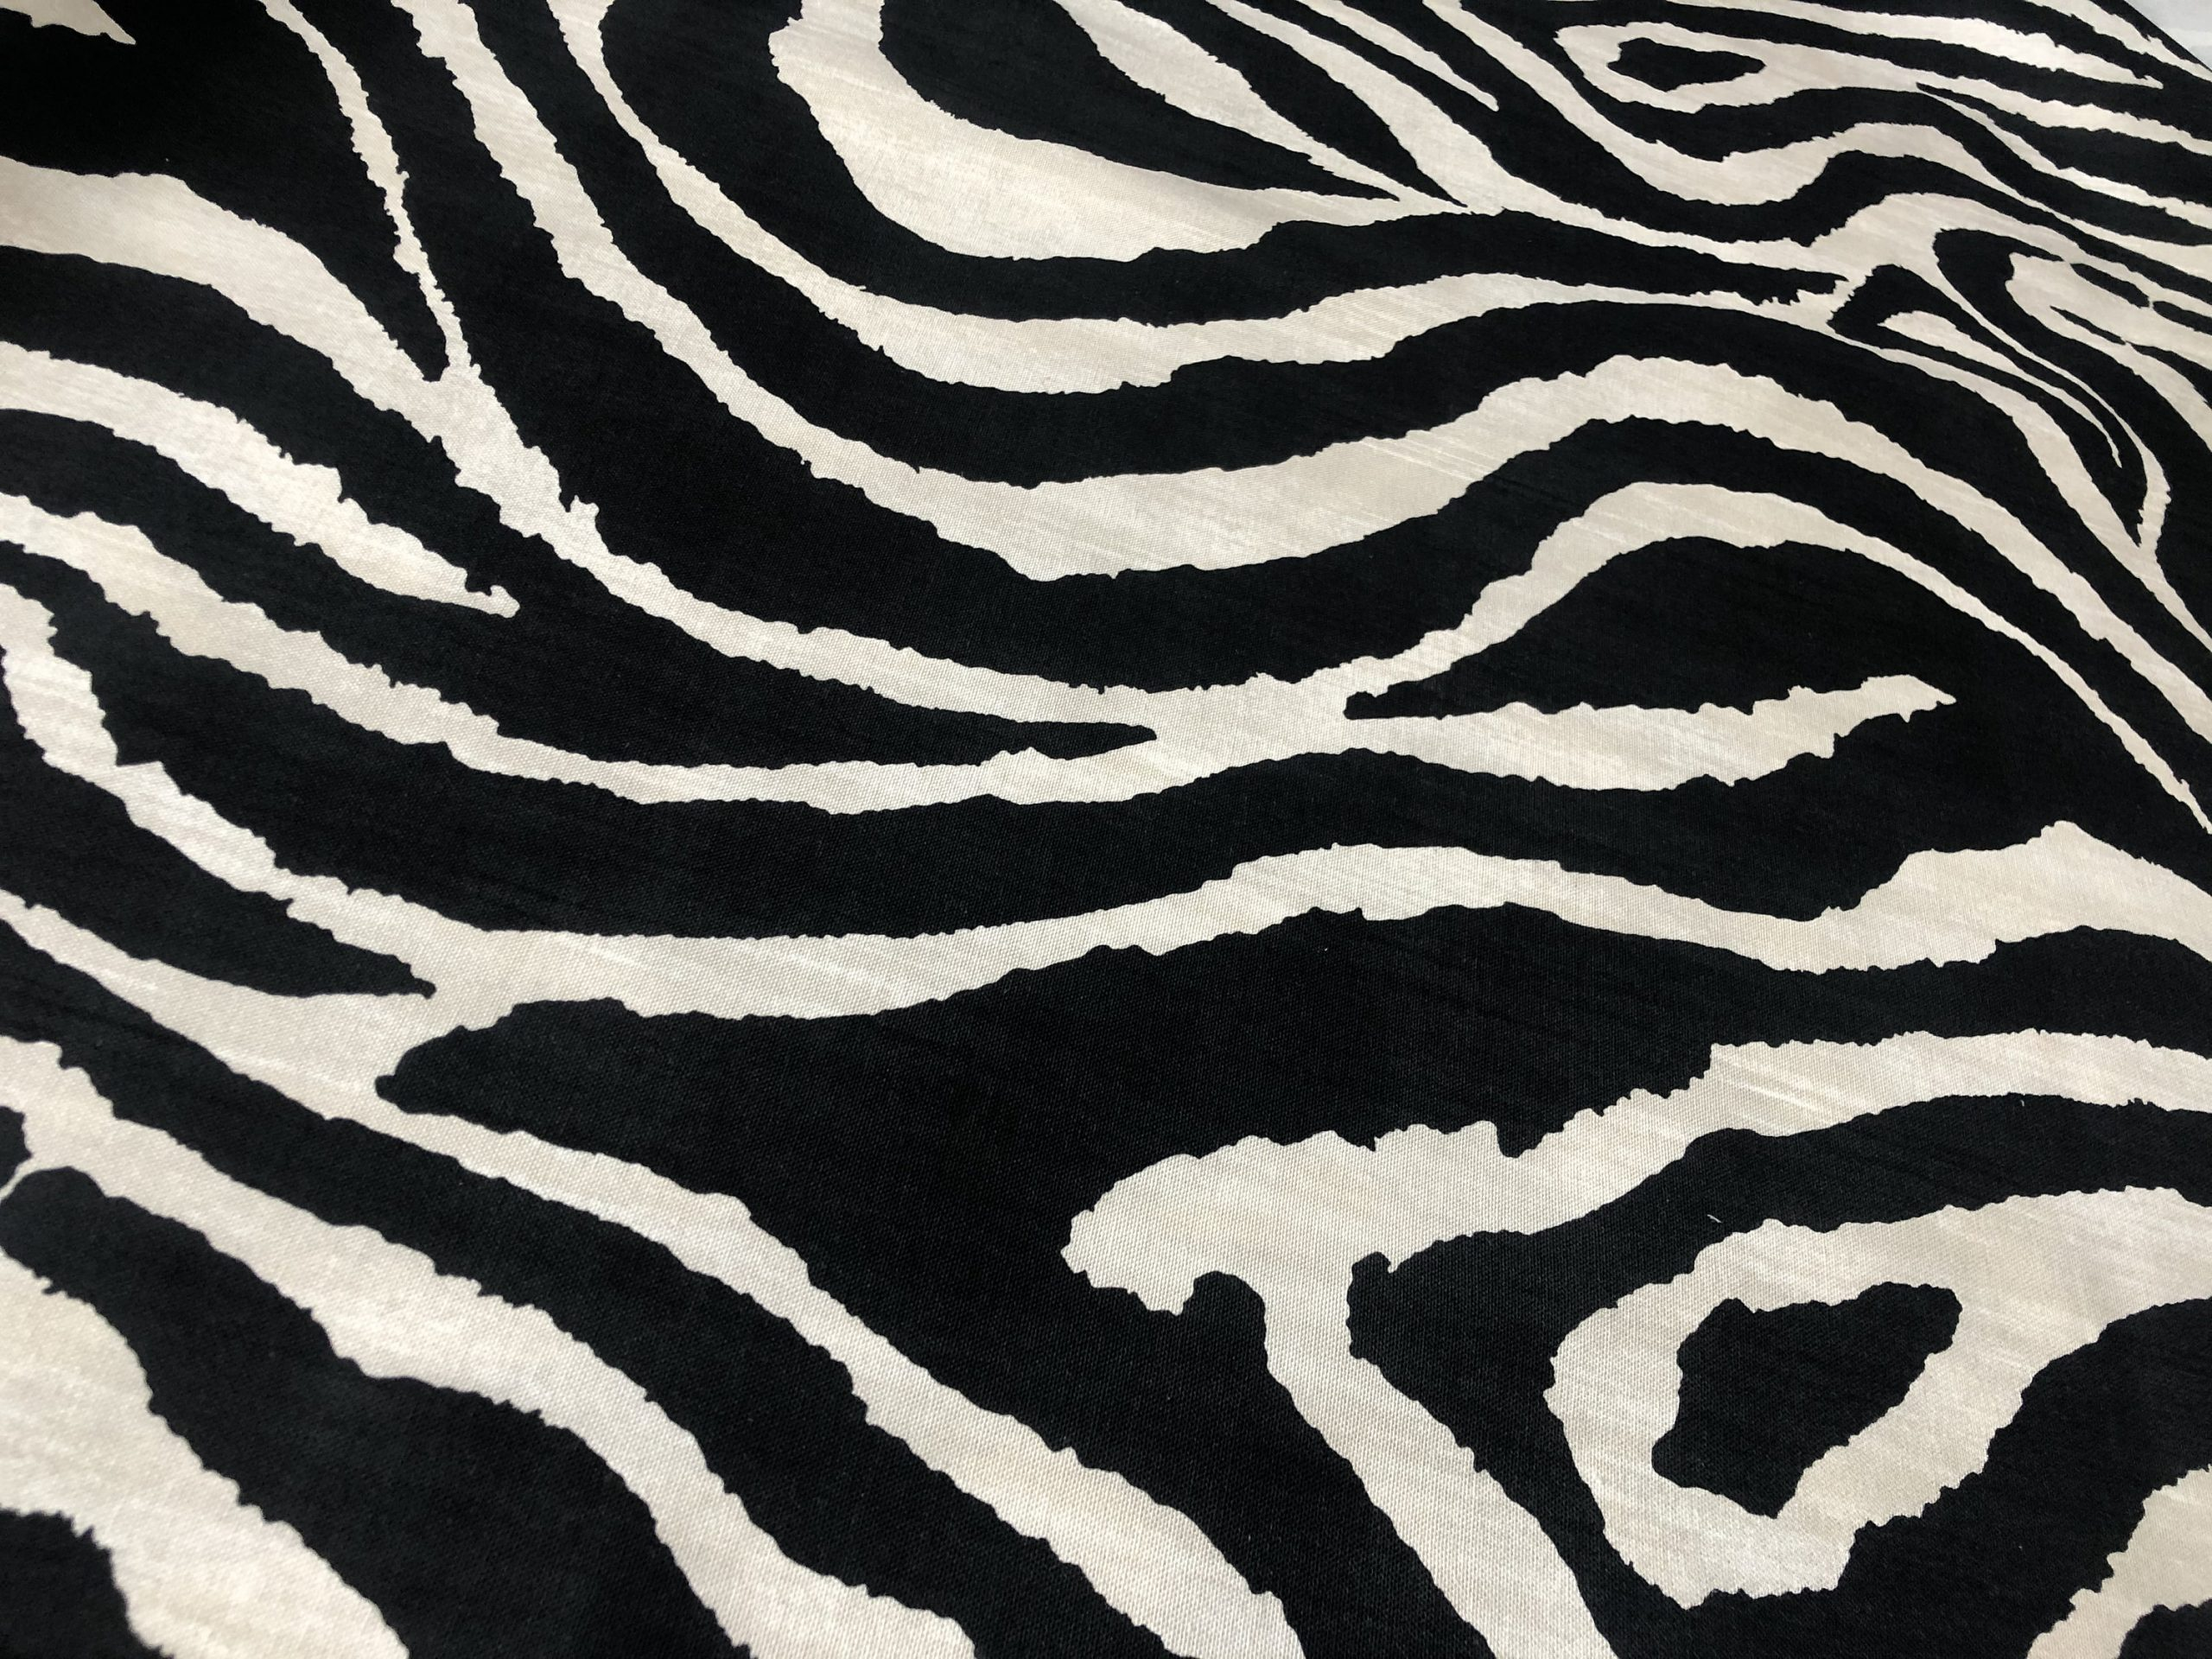 "BLACK & CREAM Zebra Stripes African Print Linen Look Cotton Fabric Furnishing Curtain Upholstery Material – 54""/138cm Wide Canvas"